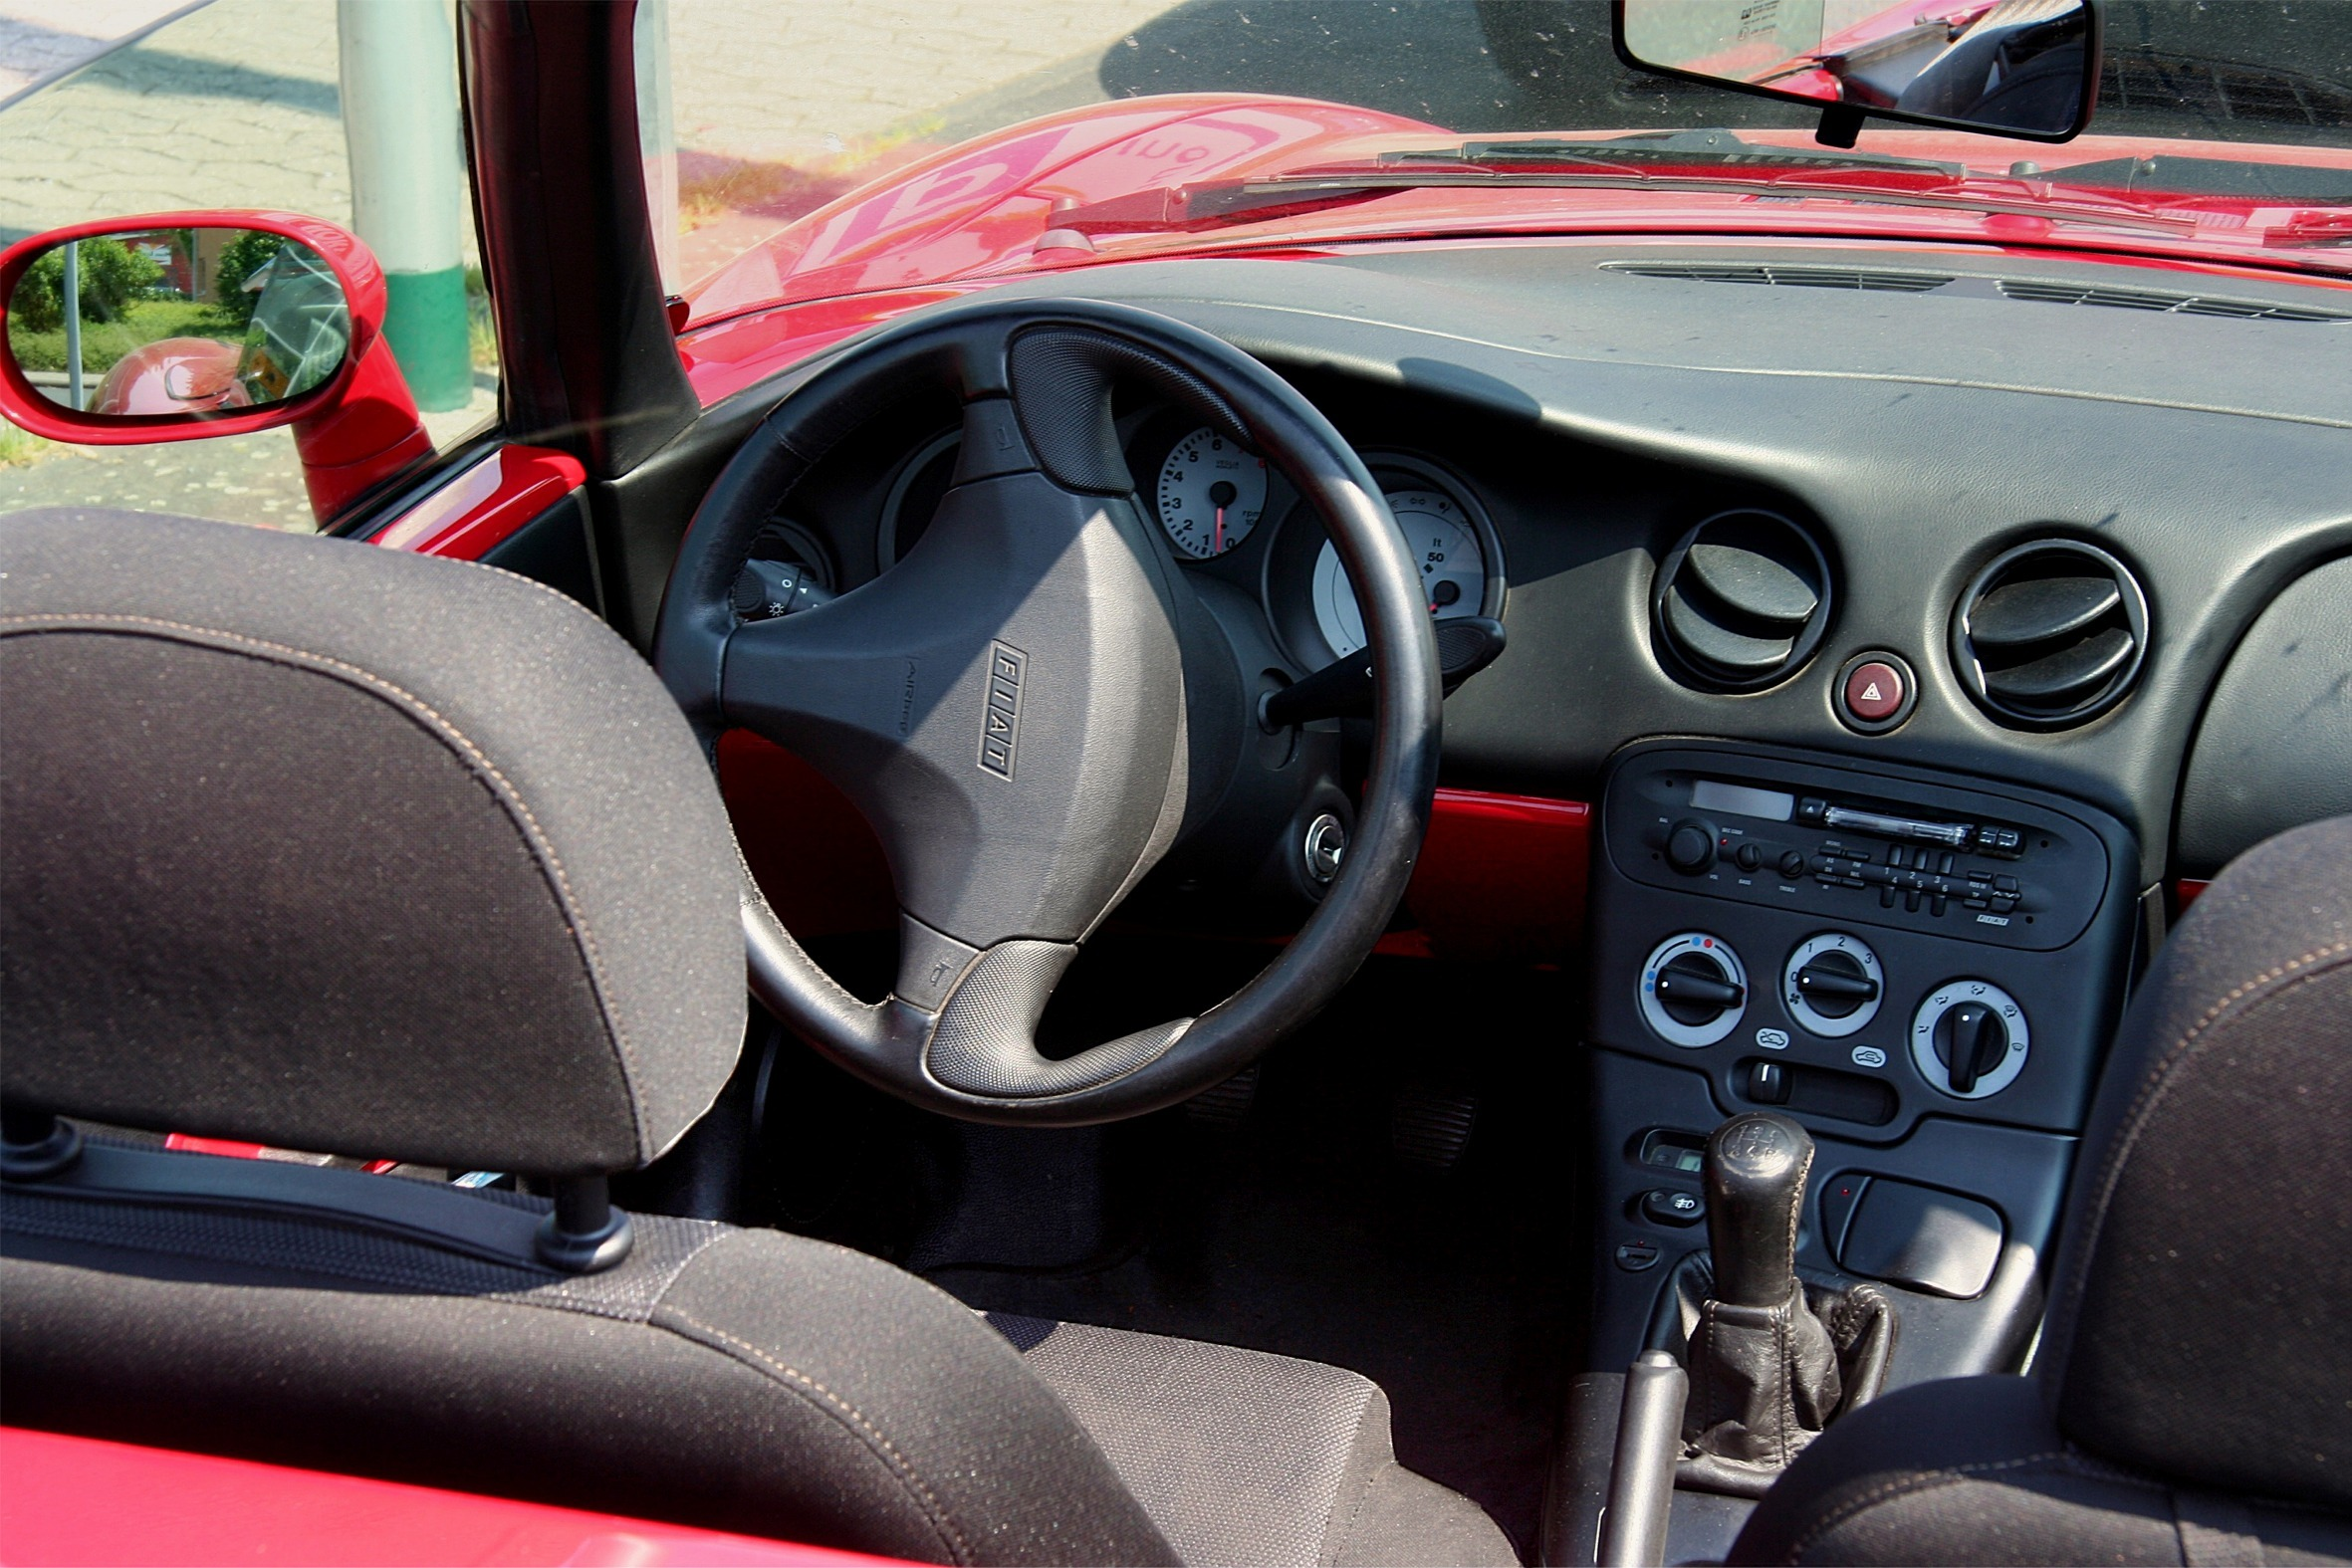 Fiat_Barchetta,_Bj._1997_-_Cockpit